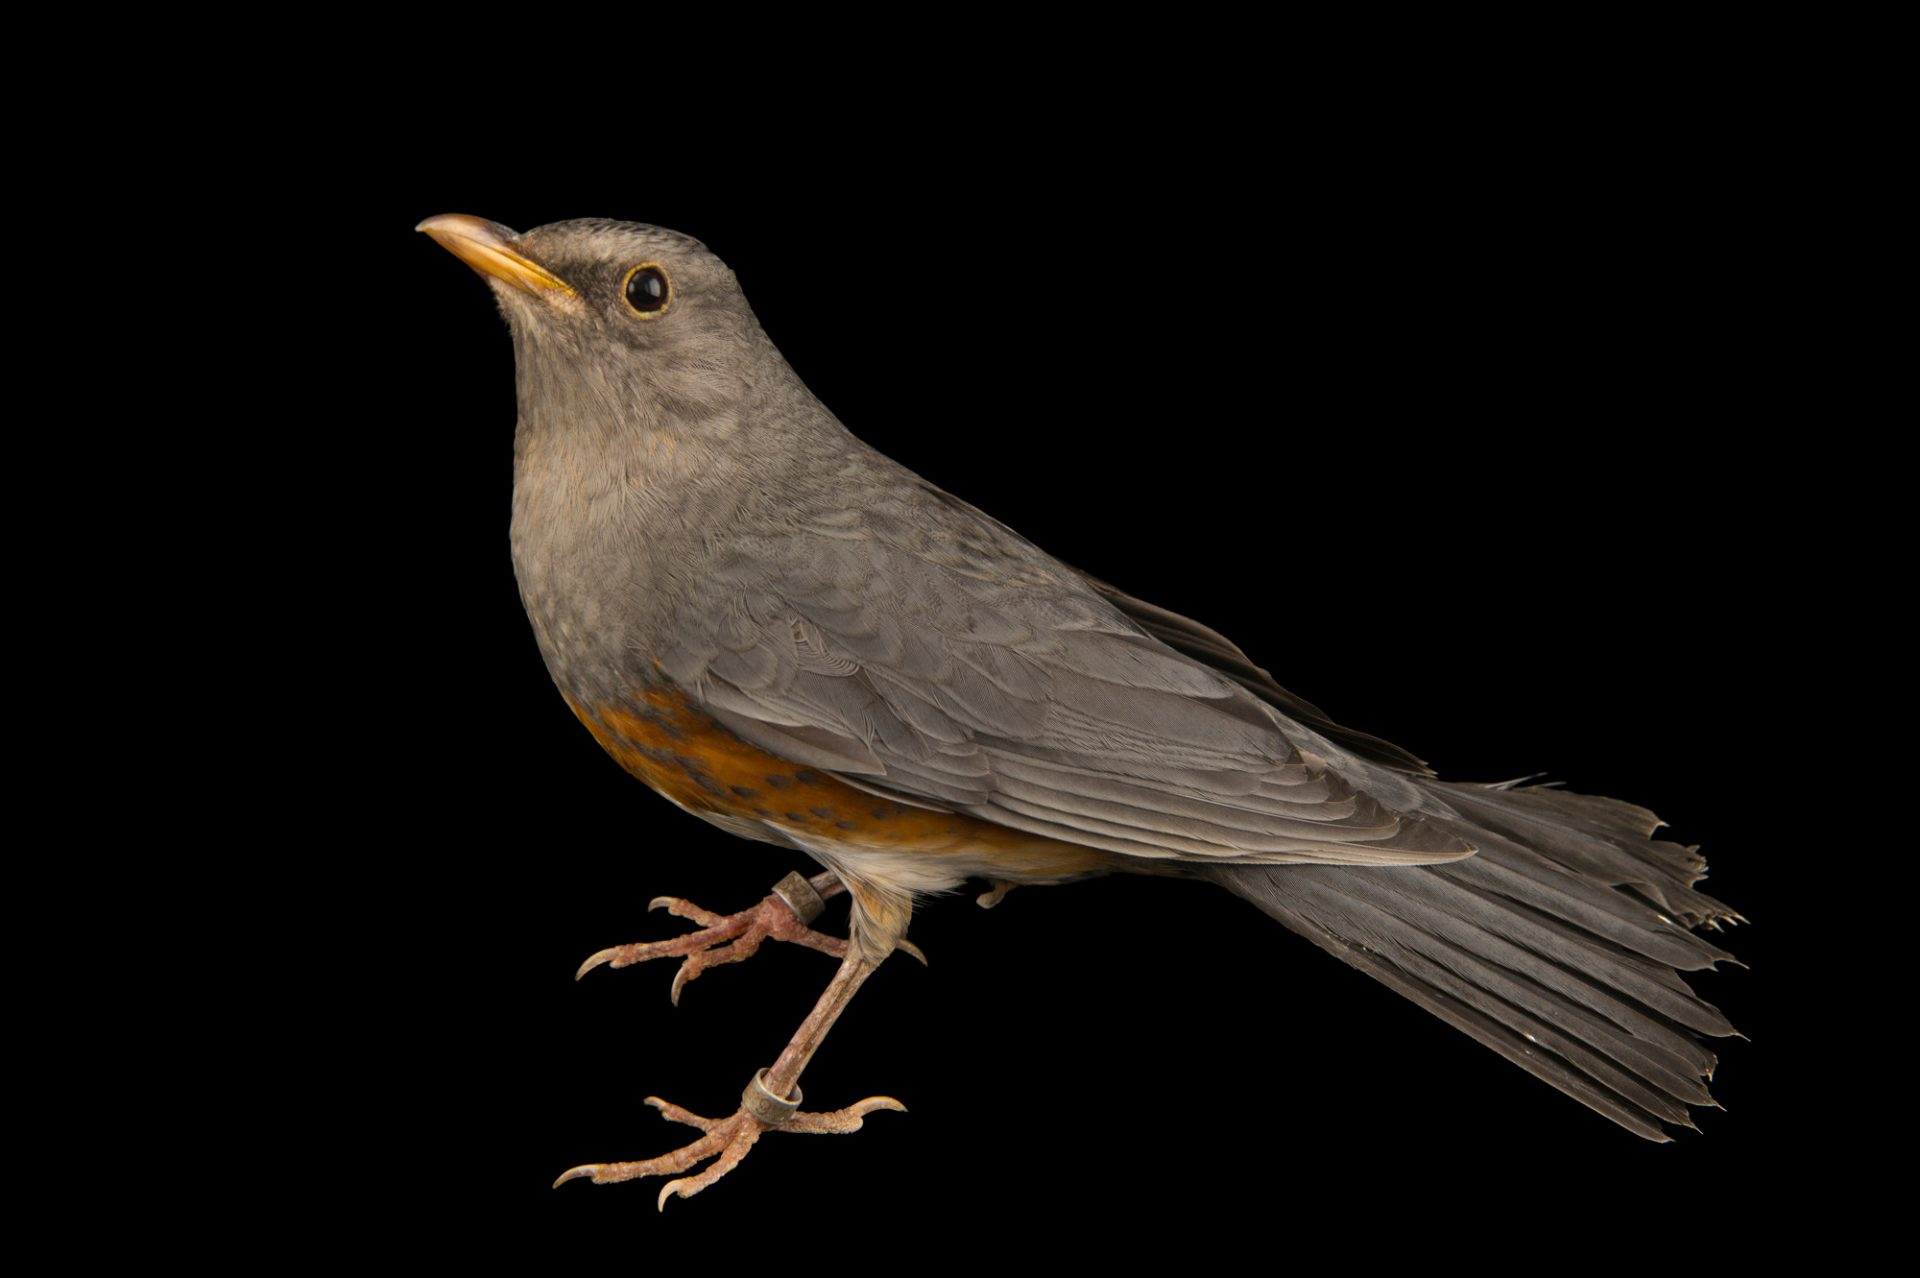 Photo: Grey backed thrush (Turdus hortulorum) at the Plzen Zoo in the Czech Republic.